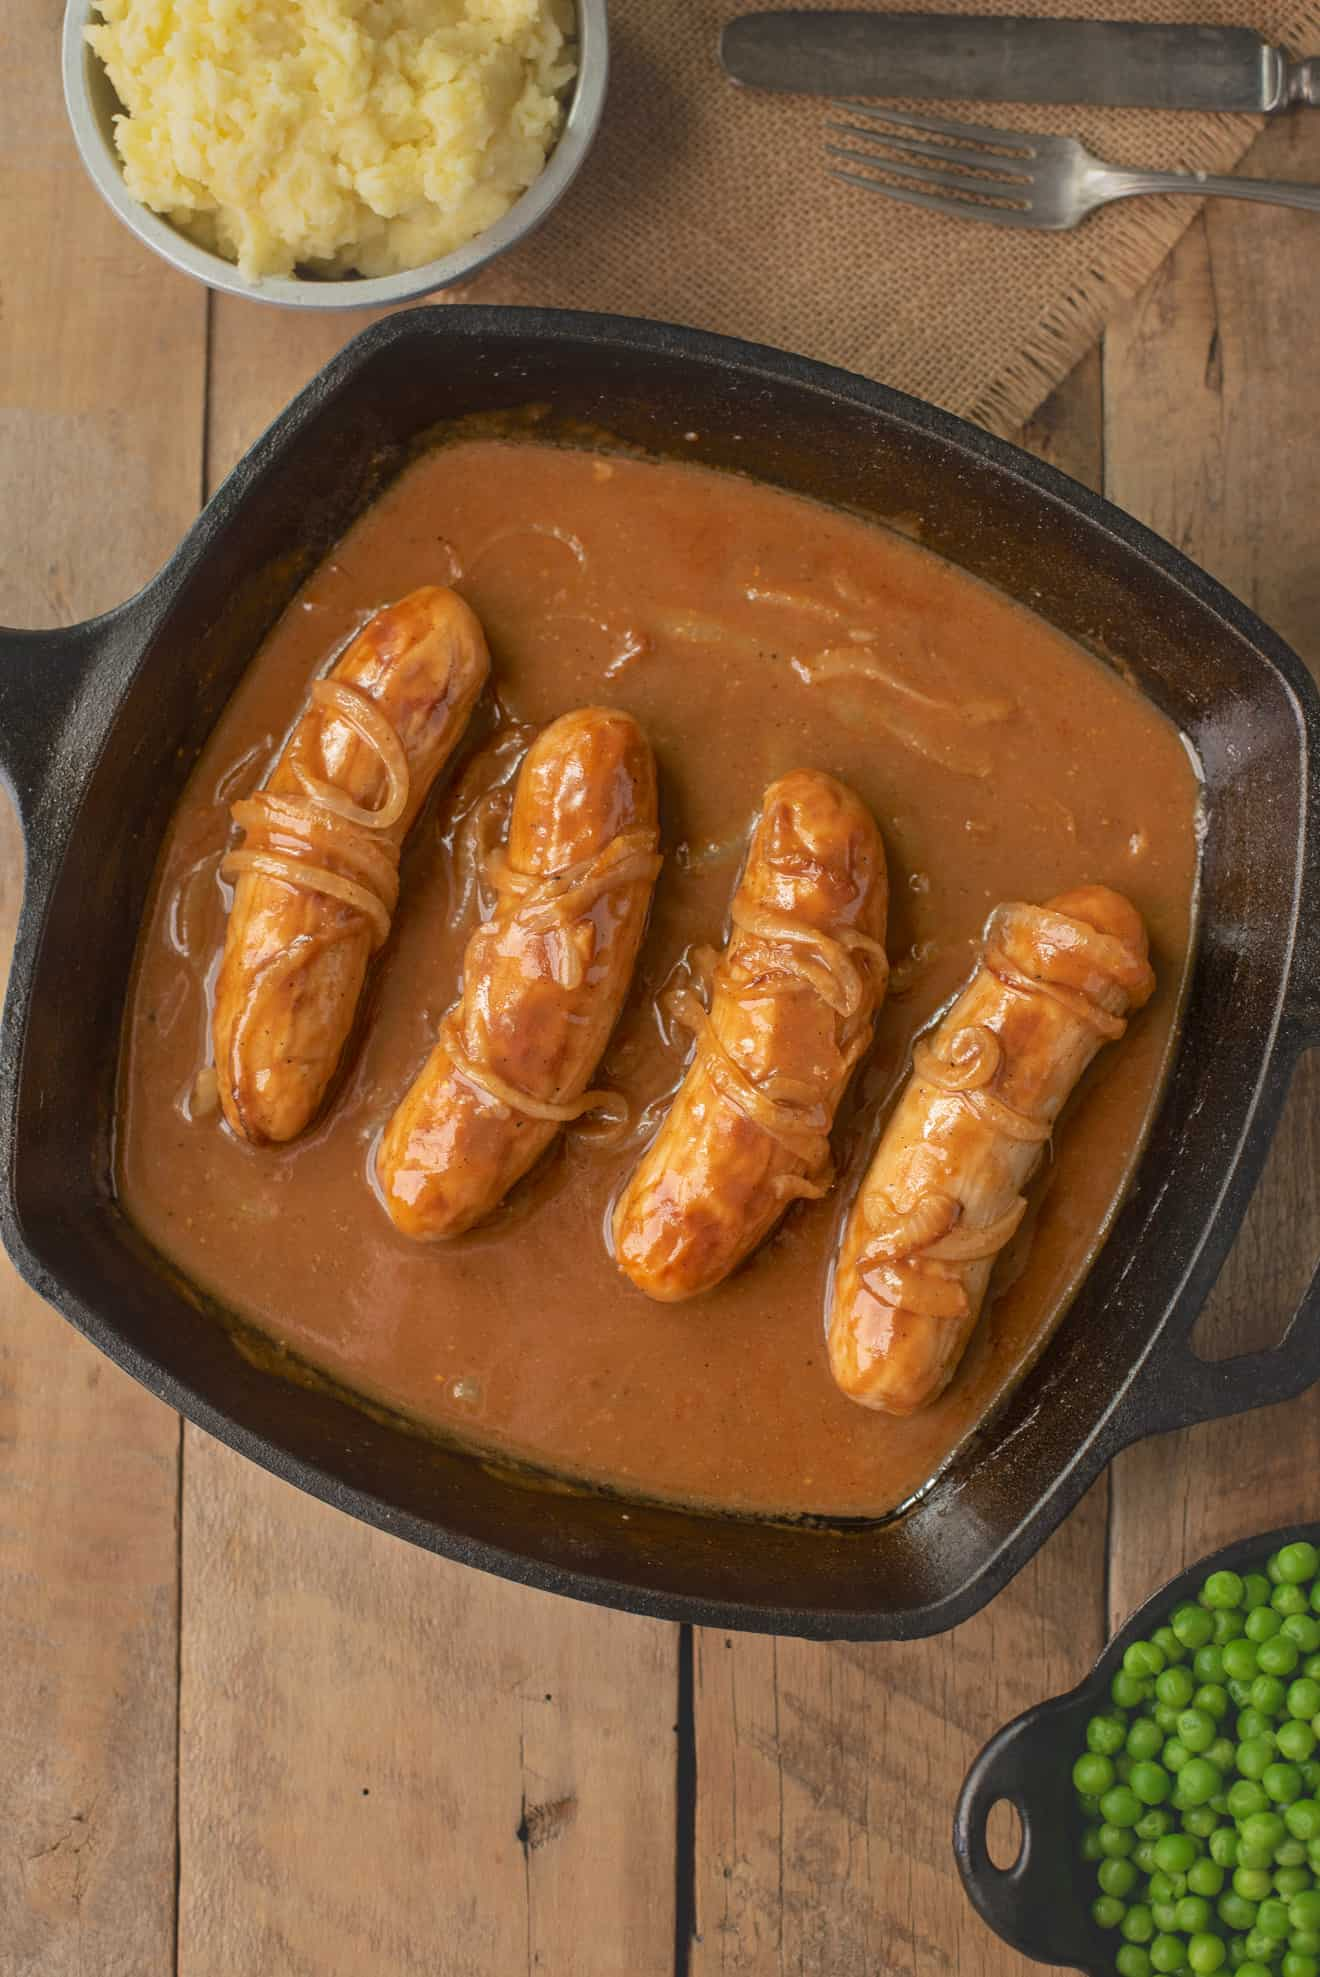 4 British bangers in a cast iron skillet cooking in onion gravy